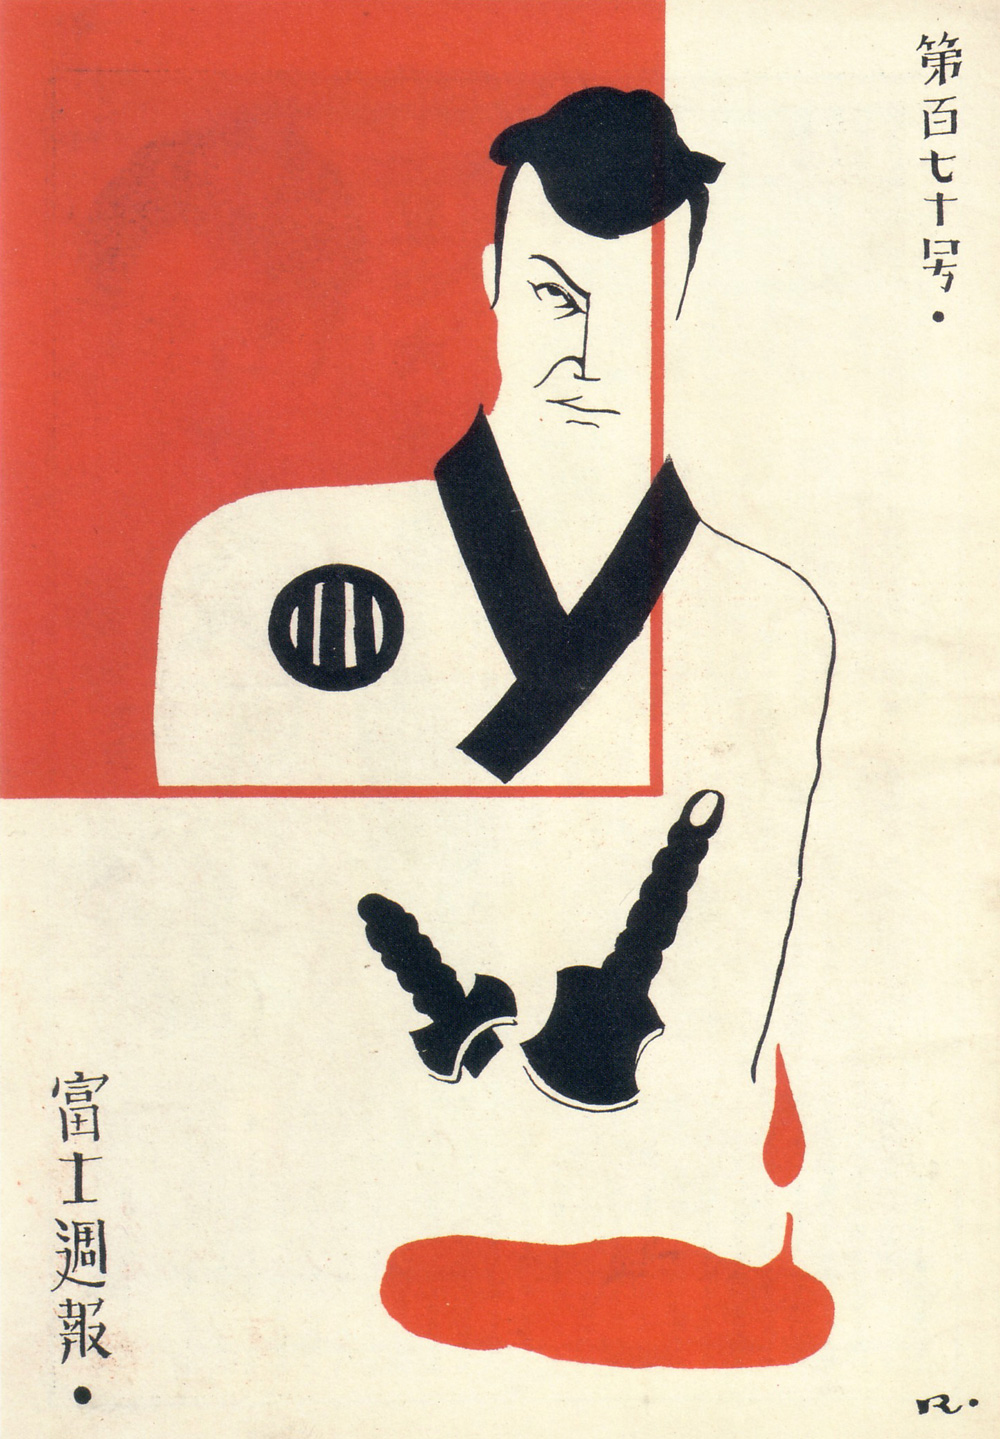 Cover (Fuji Weekly), Oct 1930